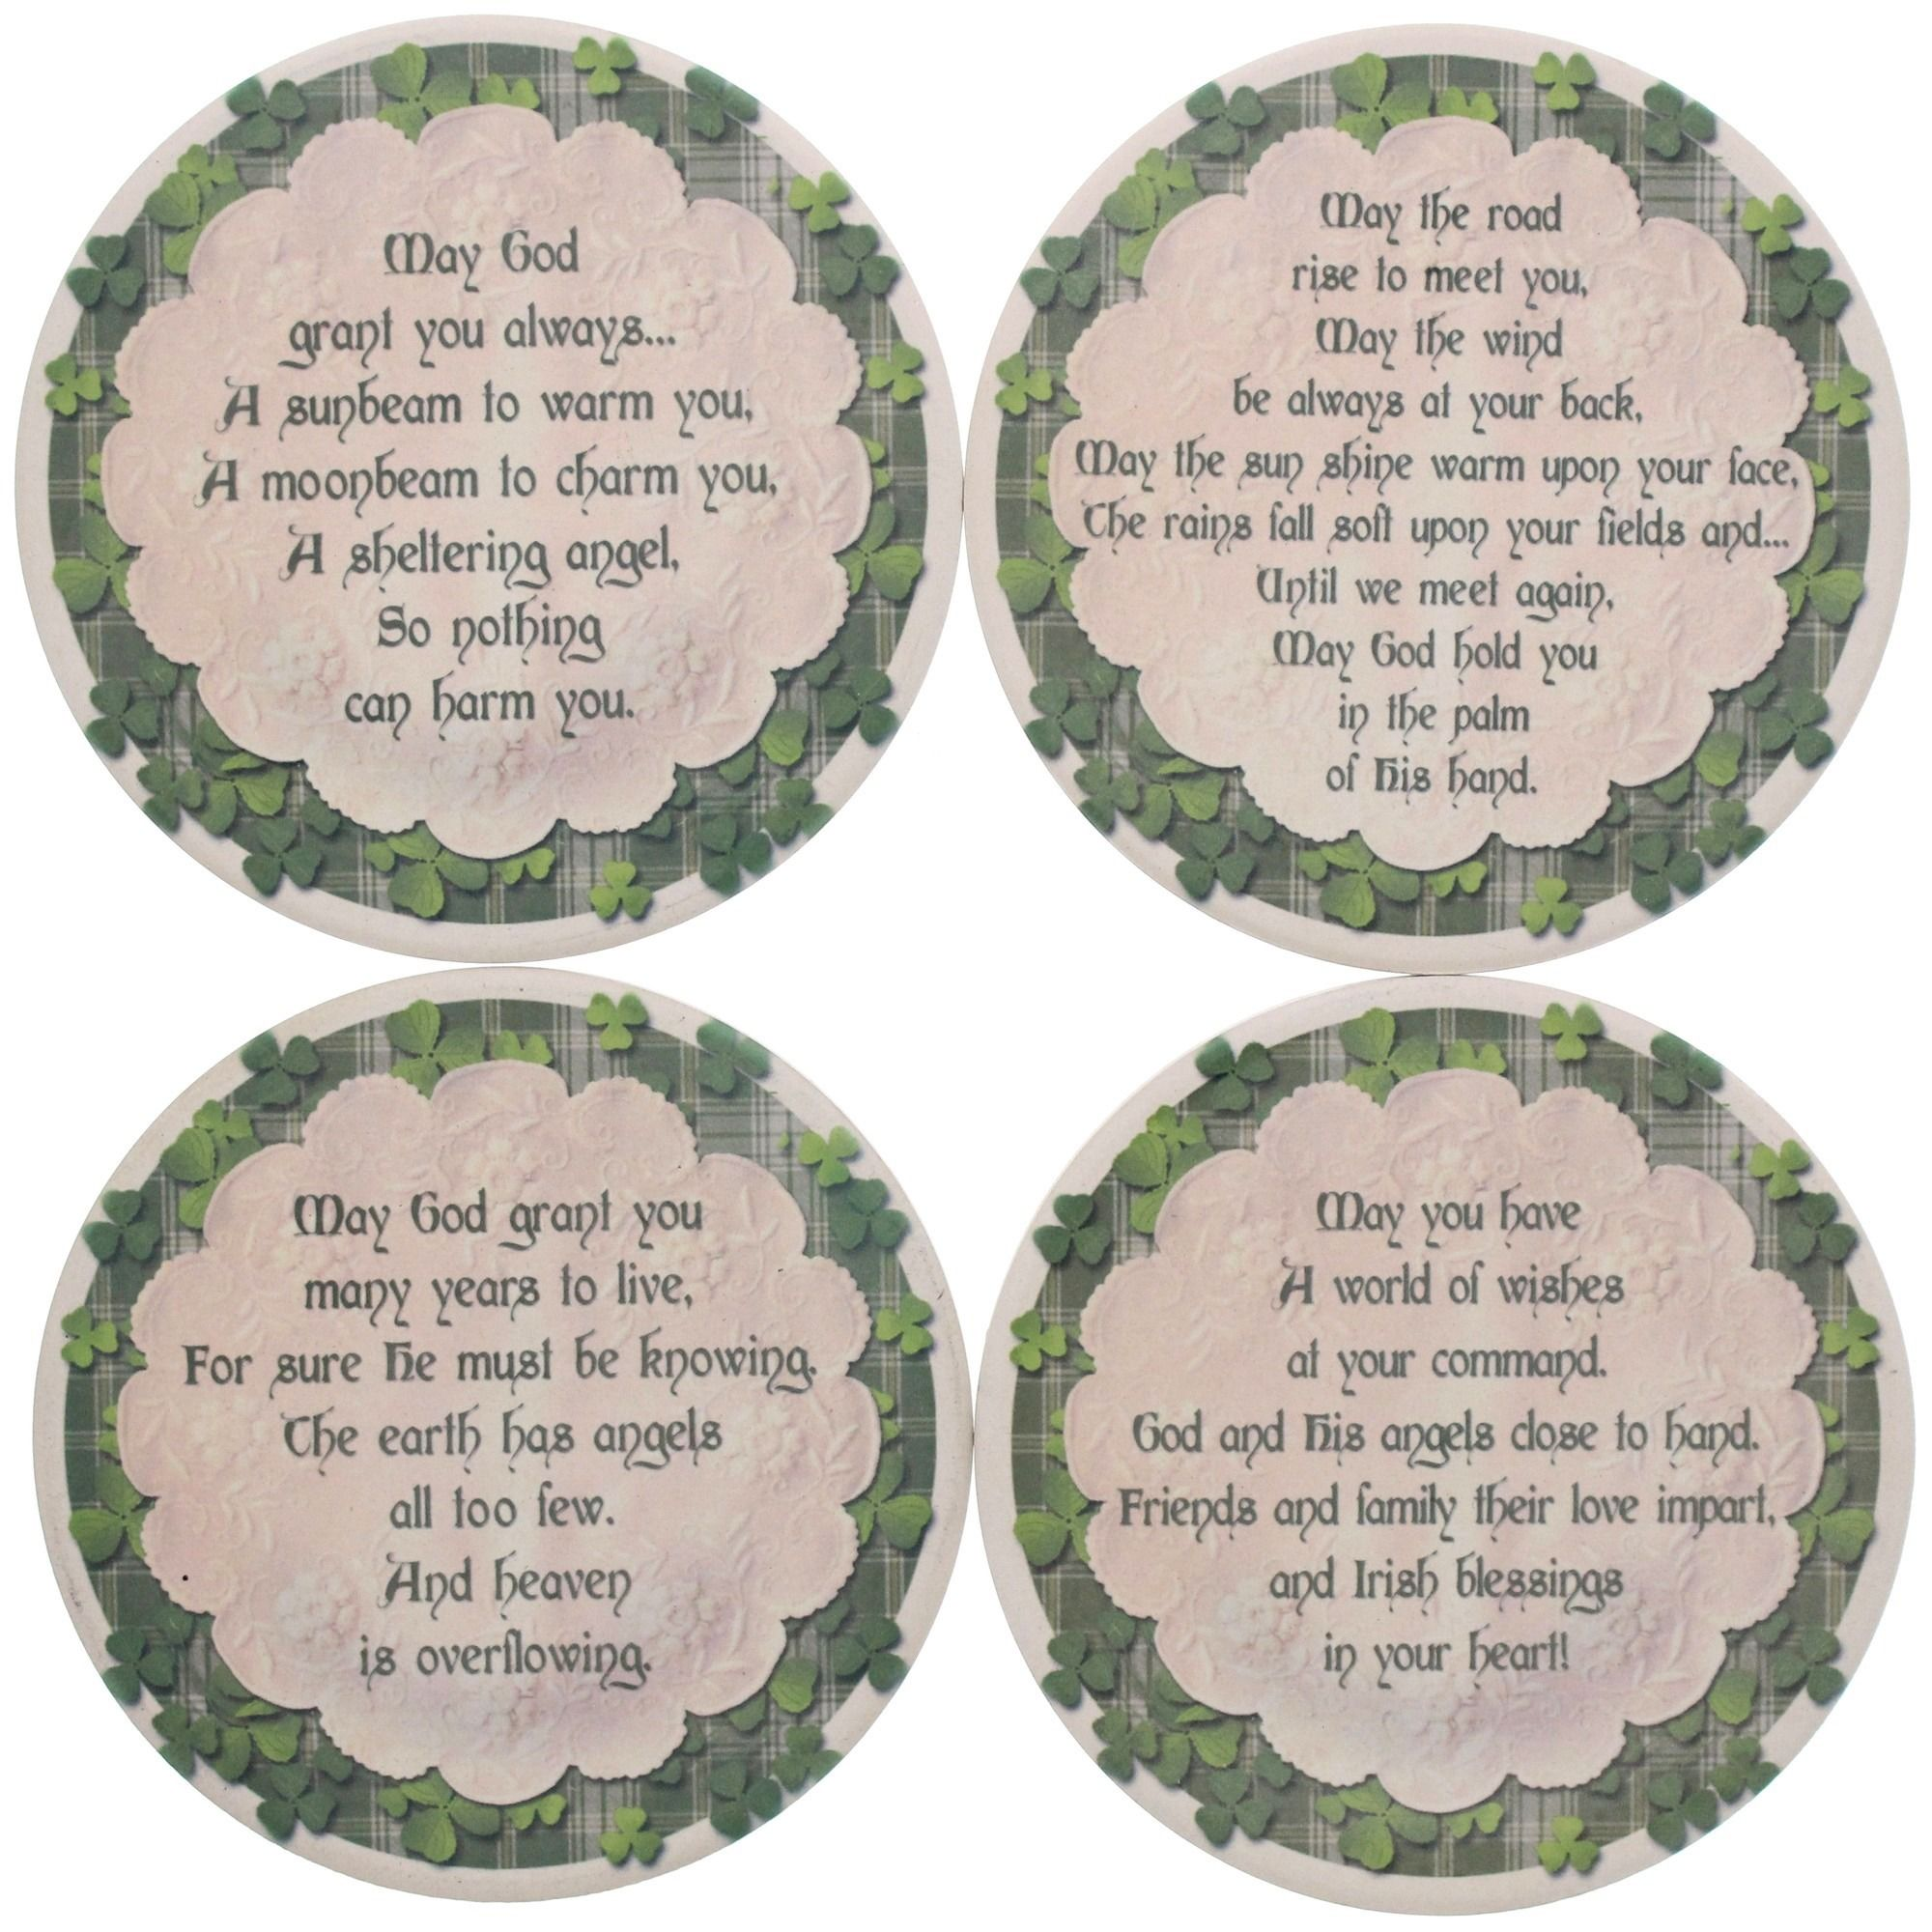 Irish Blessings Sandstone Coasters | The Catholic Company - Cut from natural, solid sandstone and fitted with a no-slide, no-scratch cork backing.